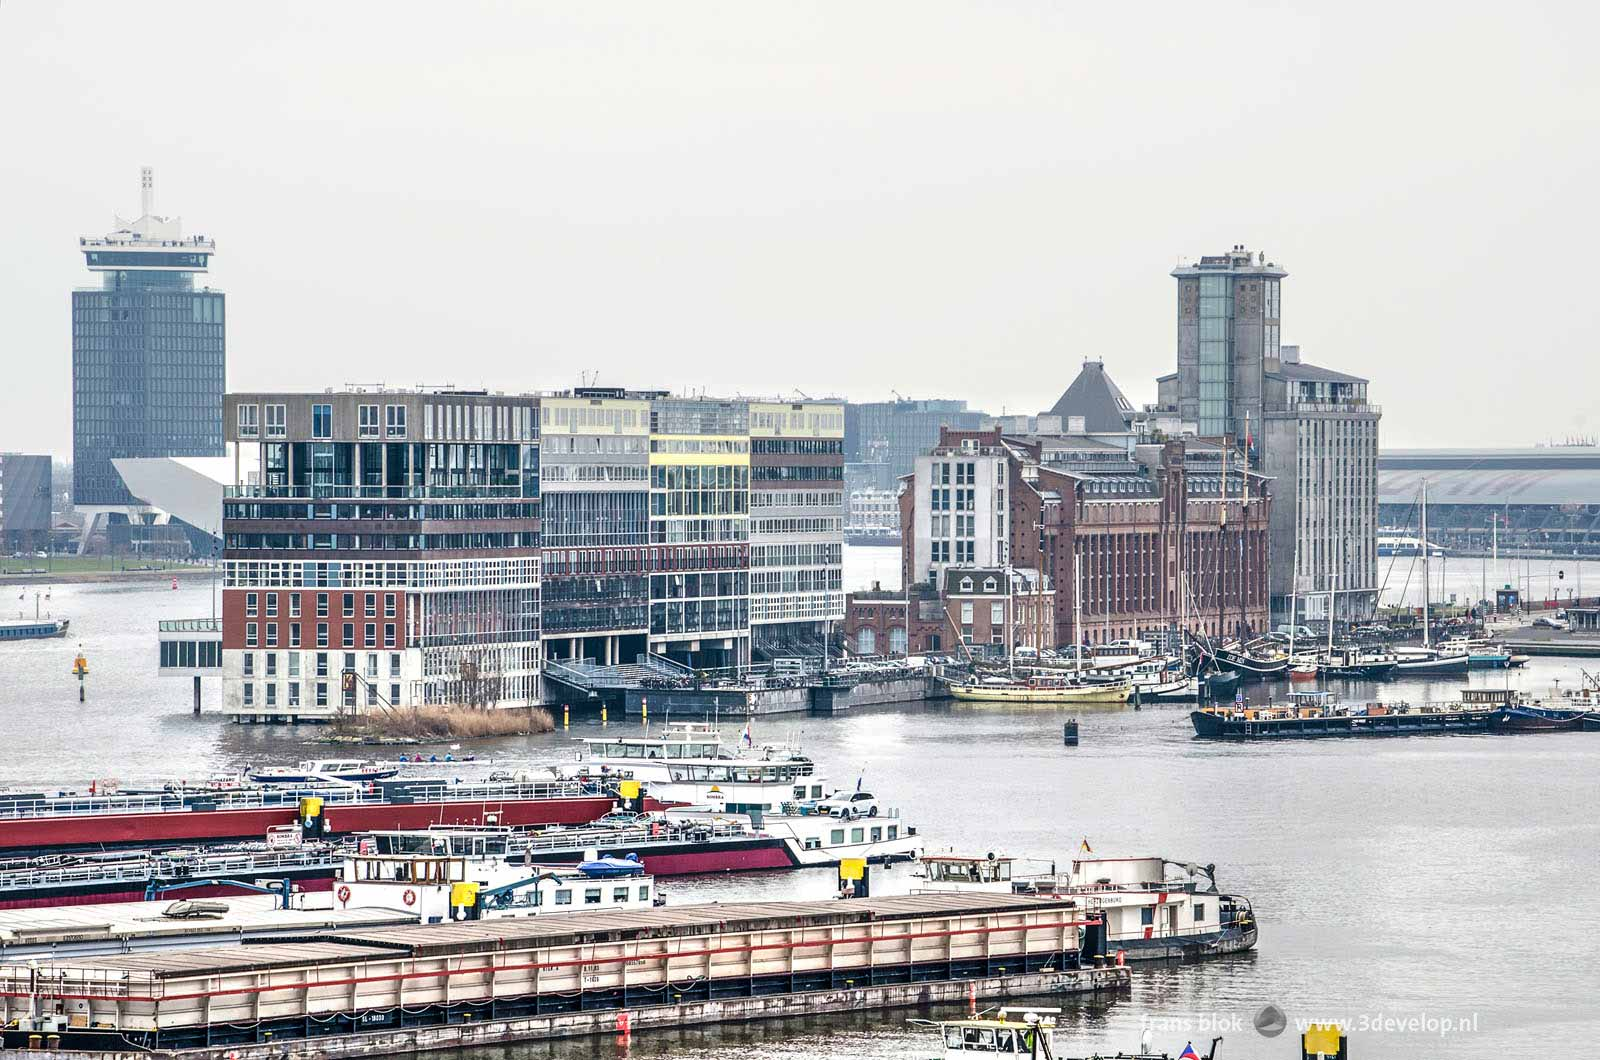 View from REM island towards Houthavens, Silodam, the A'dam tower and the Central Station in Amsterdam